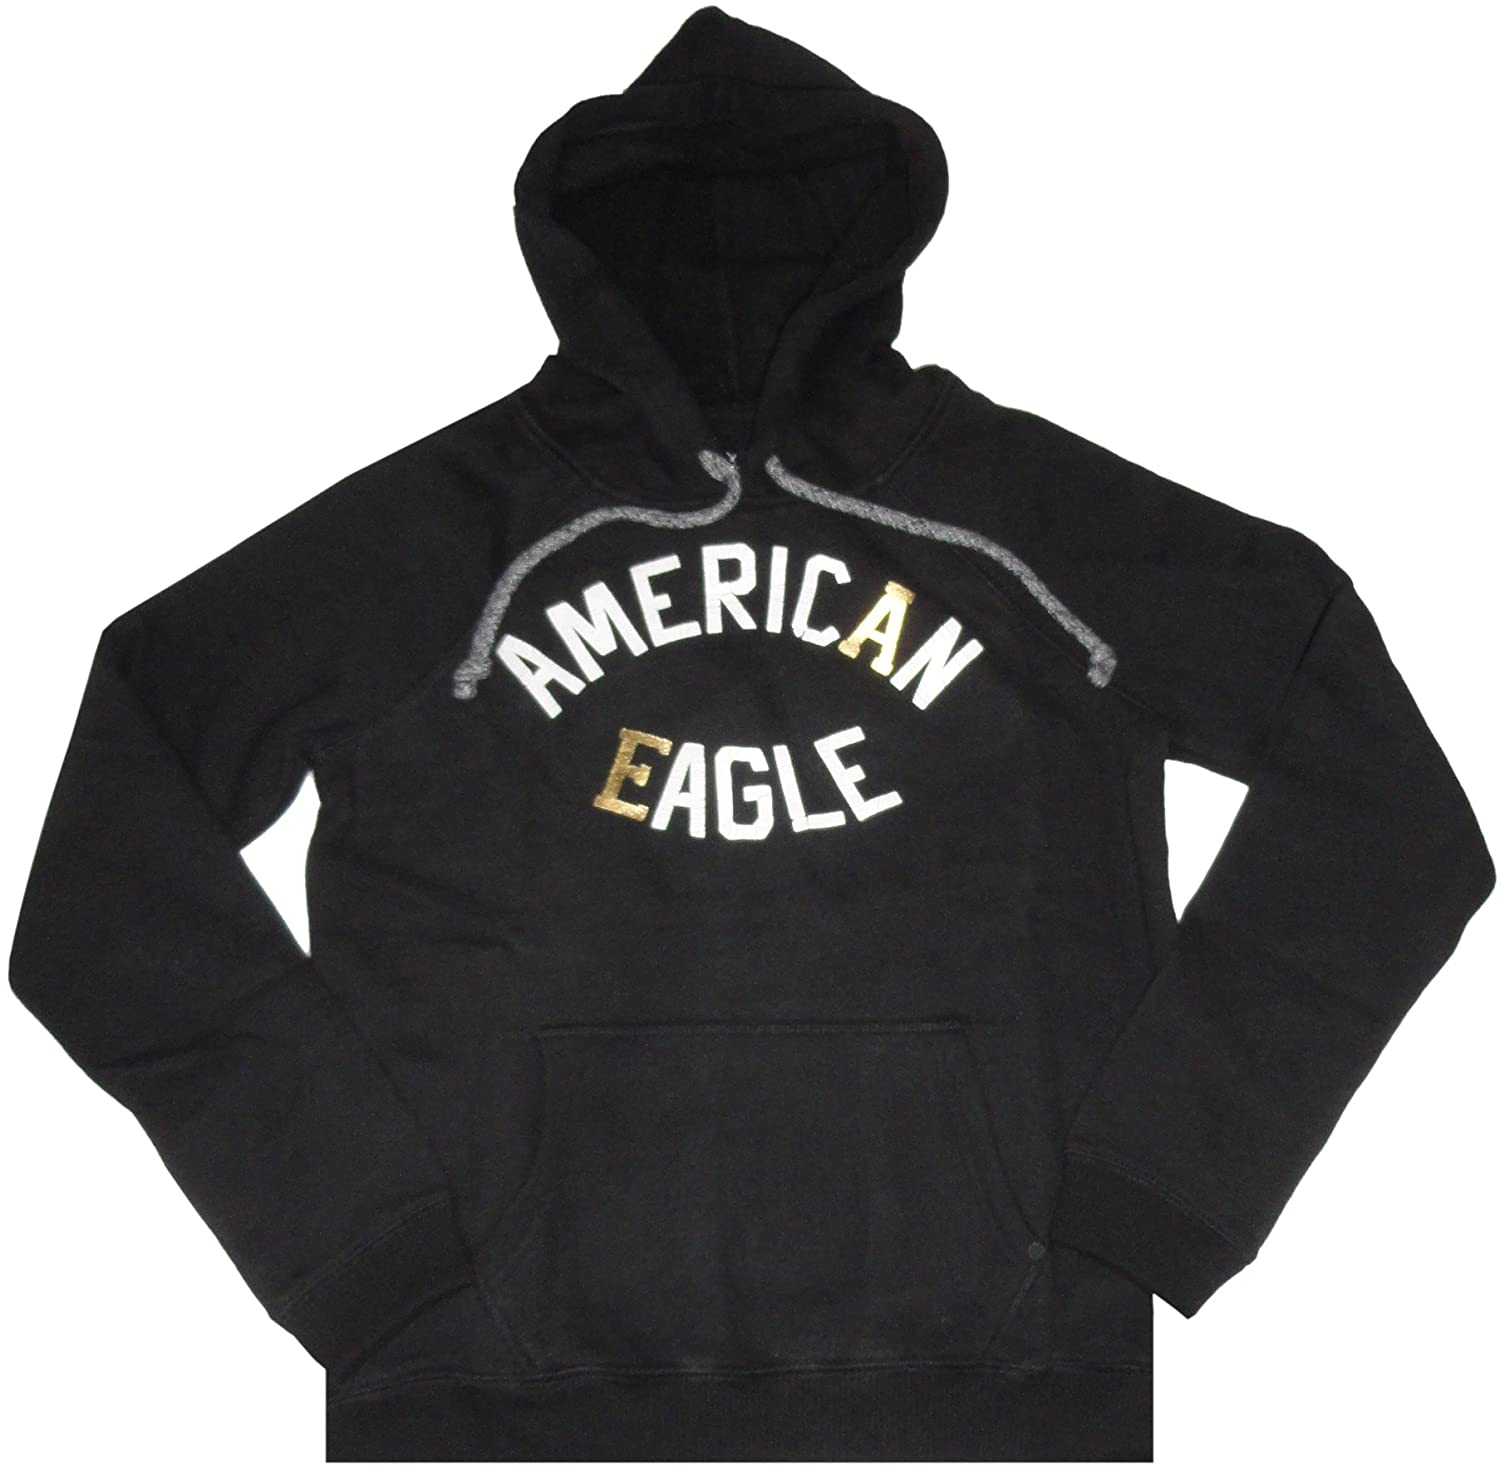 a58dc011 American Eagle Women's Hooded Sweat Jacket Hoodie Black (Small) at ...